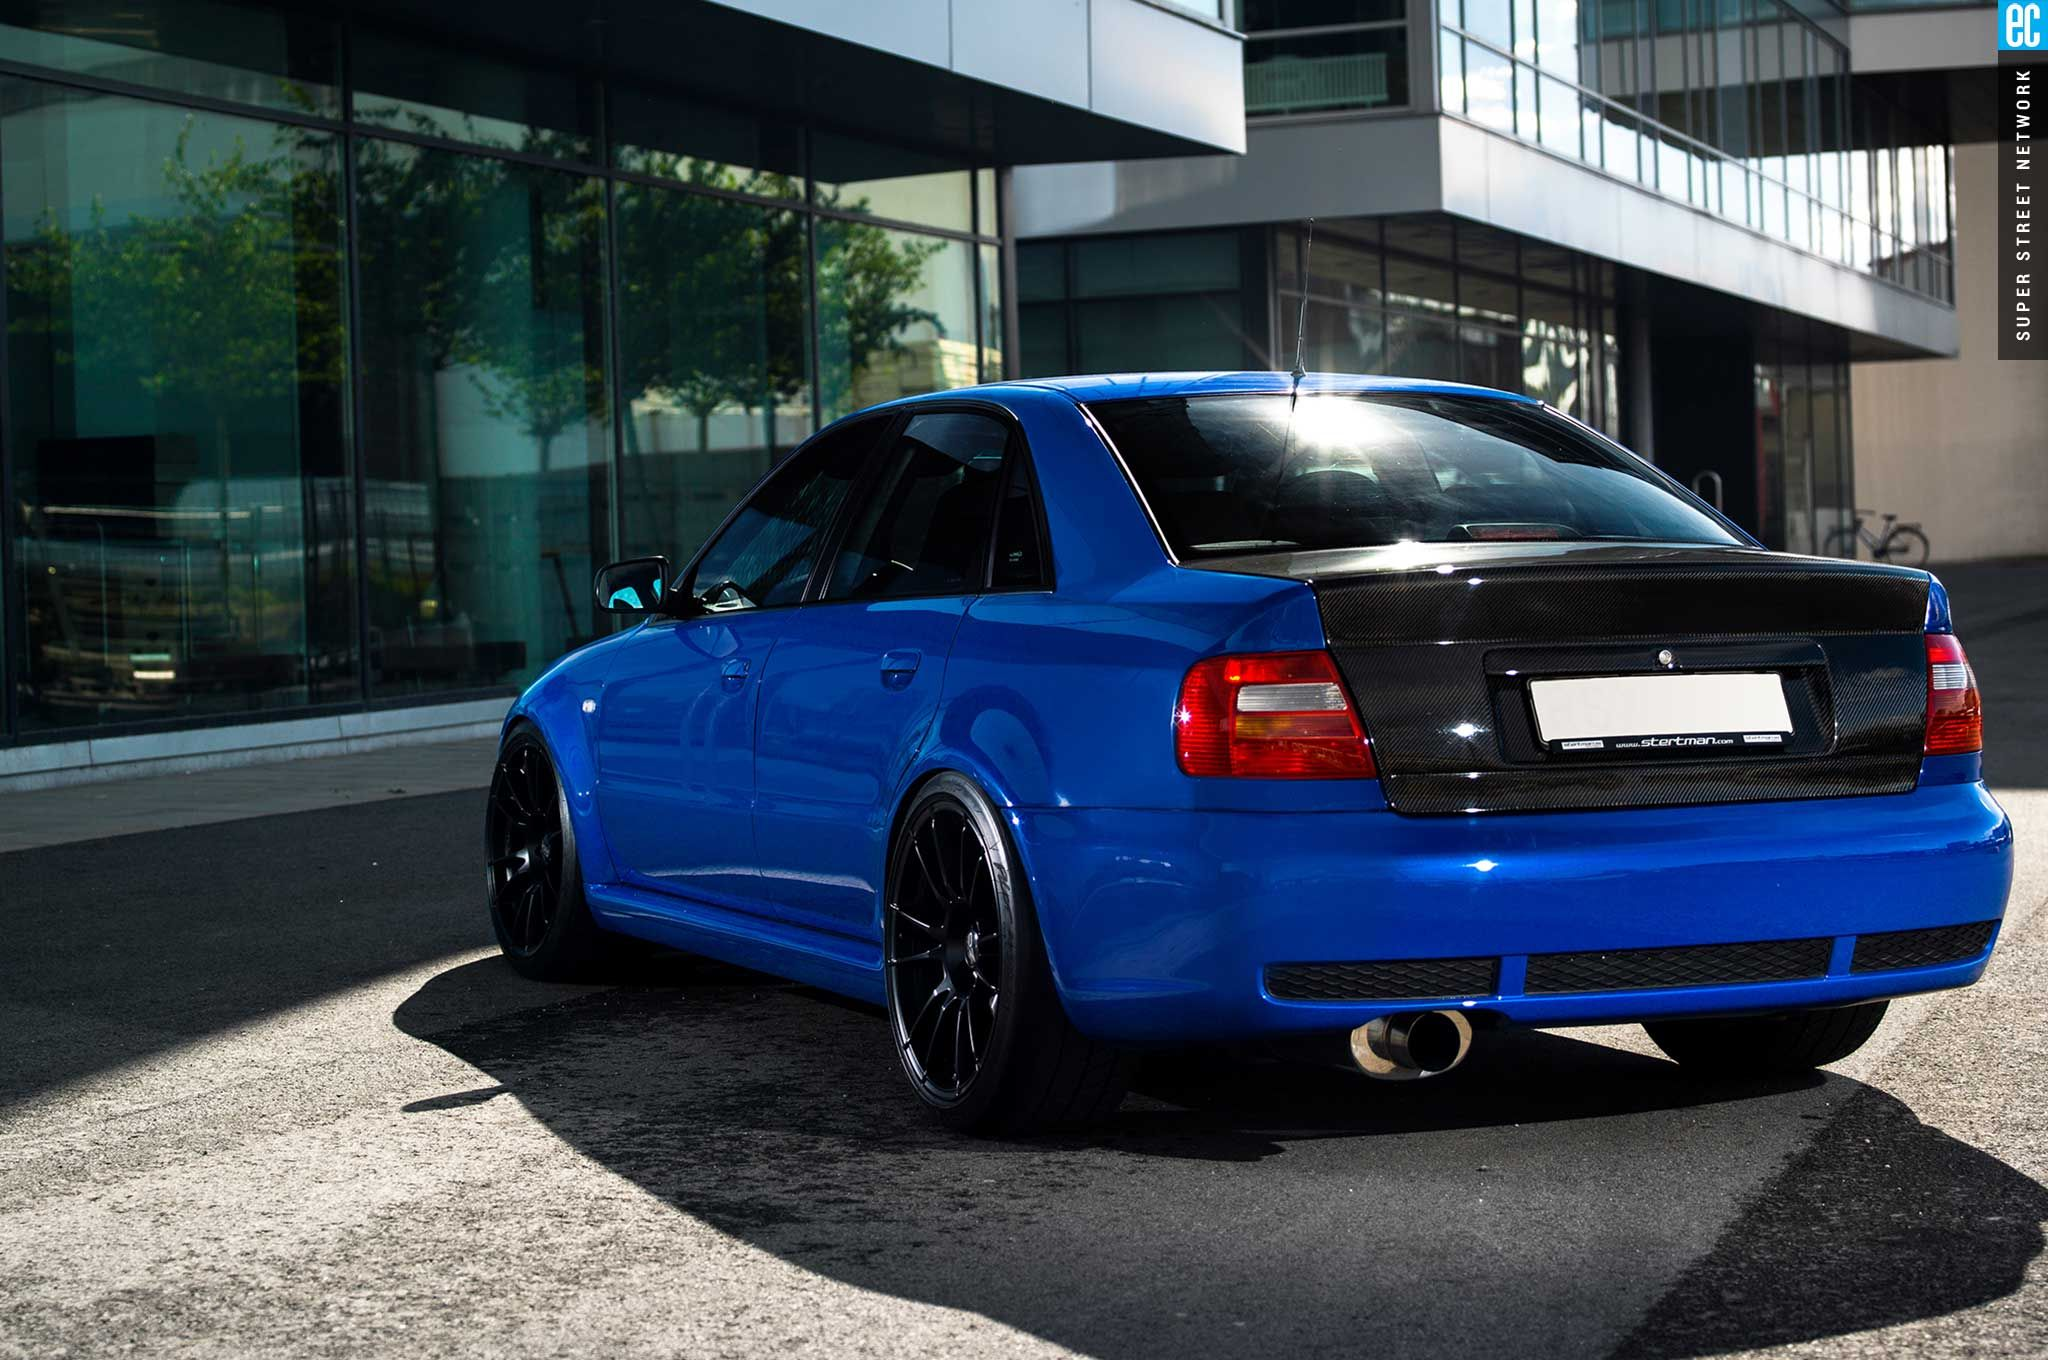 audi-rs4-b5-sedan-seibon-carbon-fiber-trunk.jpg